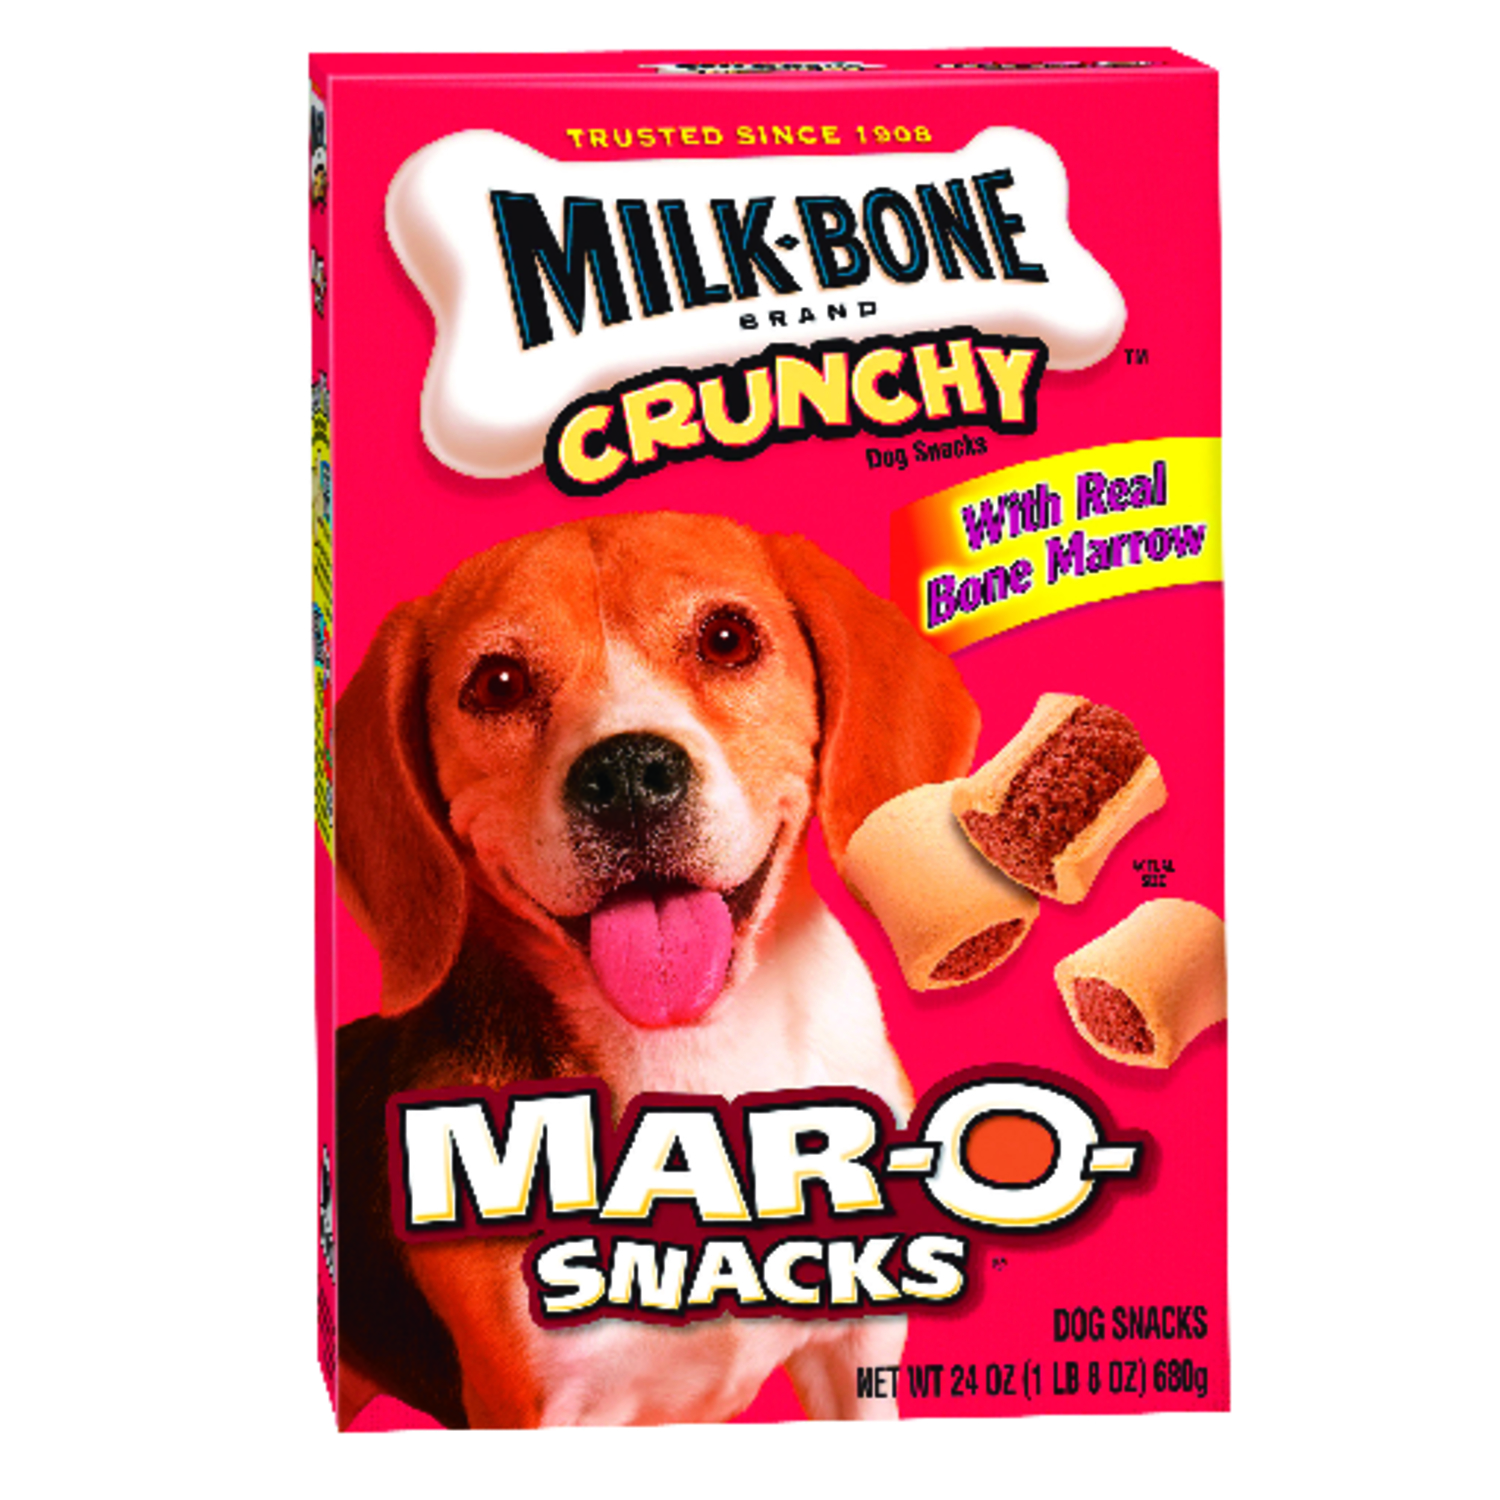 Milk Bone  Mar-O-Snacks  Bacon  Dog  Biscuit  1 pk 24 oz.